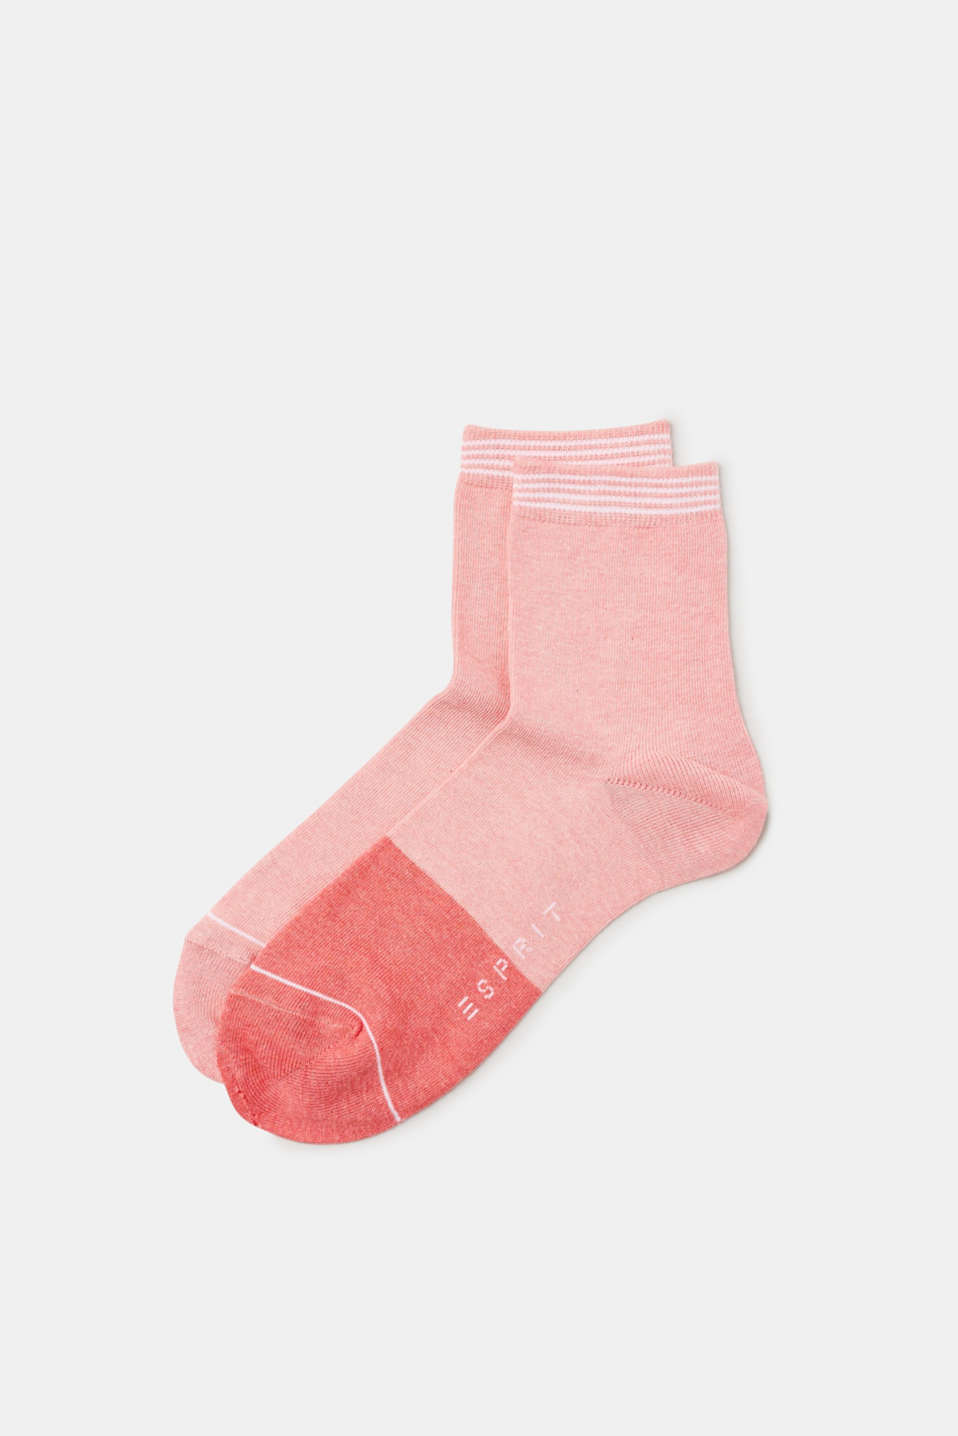 Esprit - Double pack of socks with a striped cuff